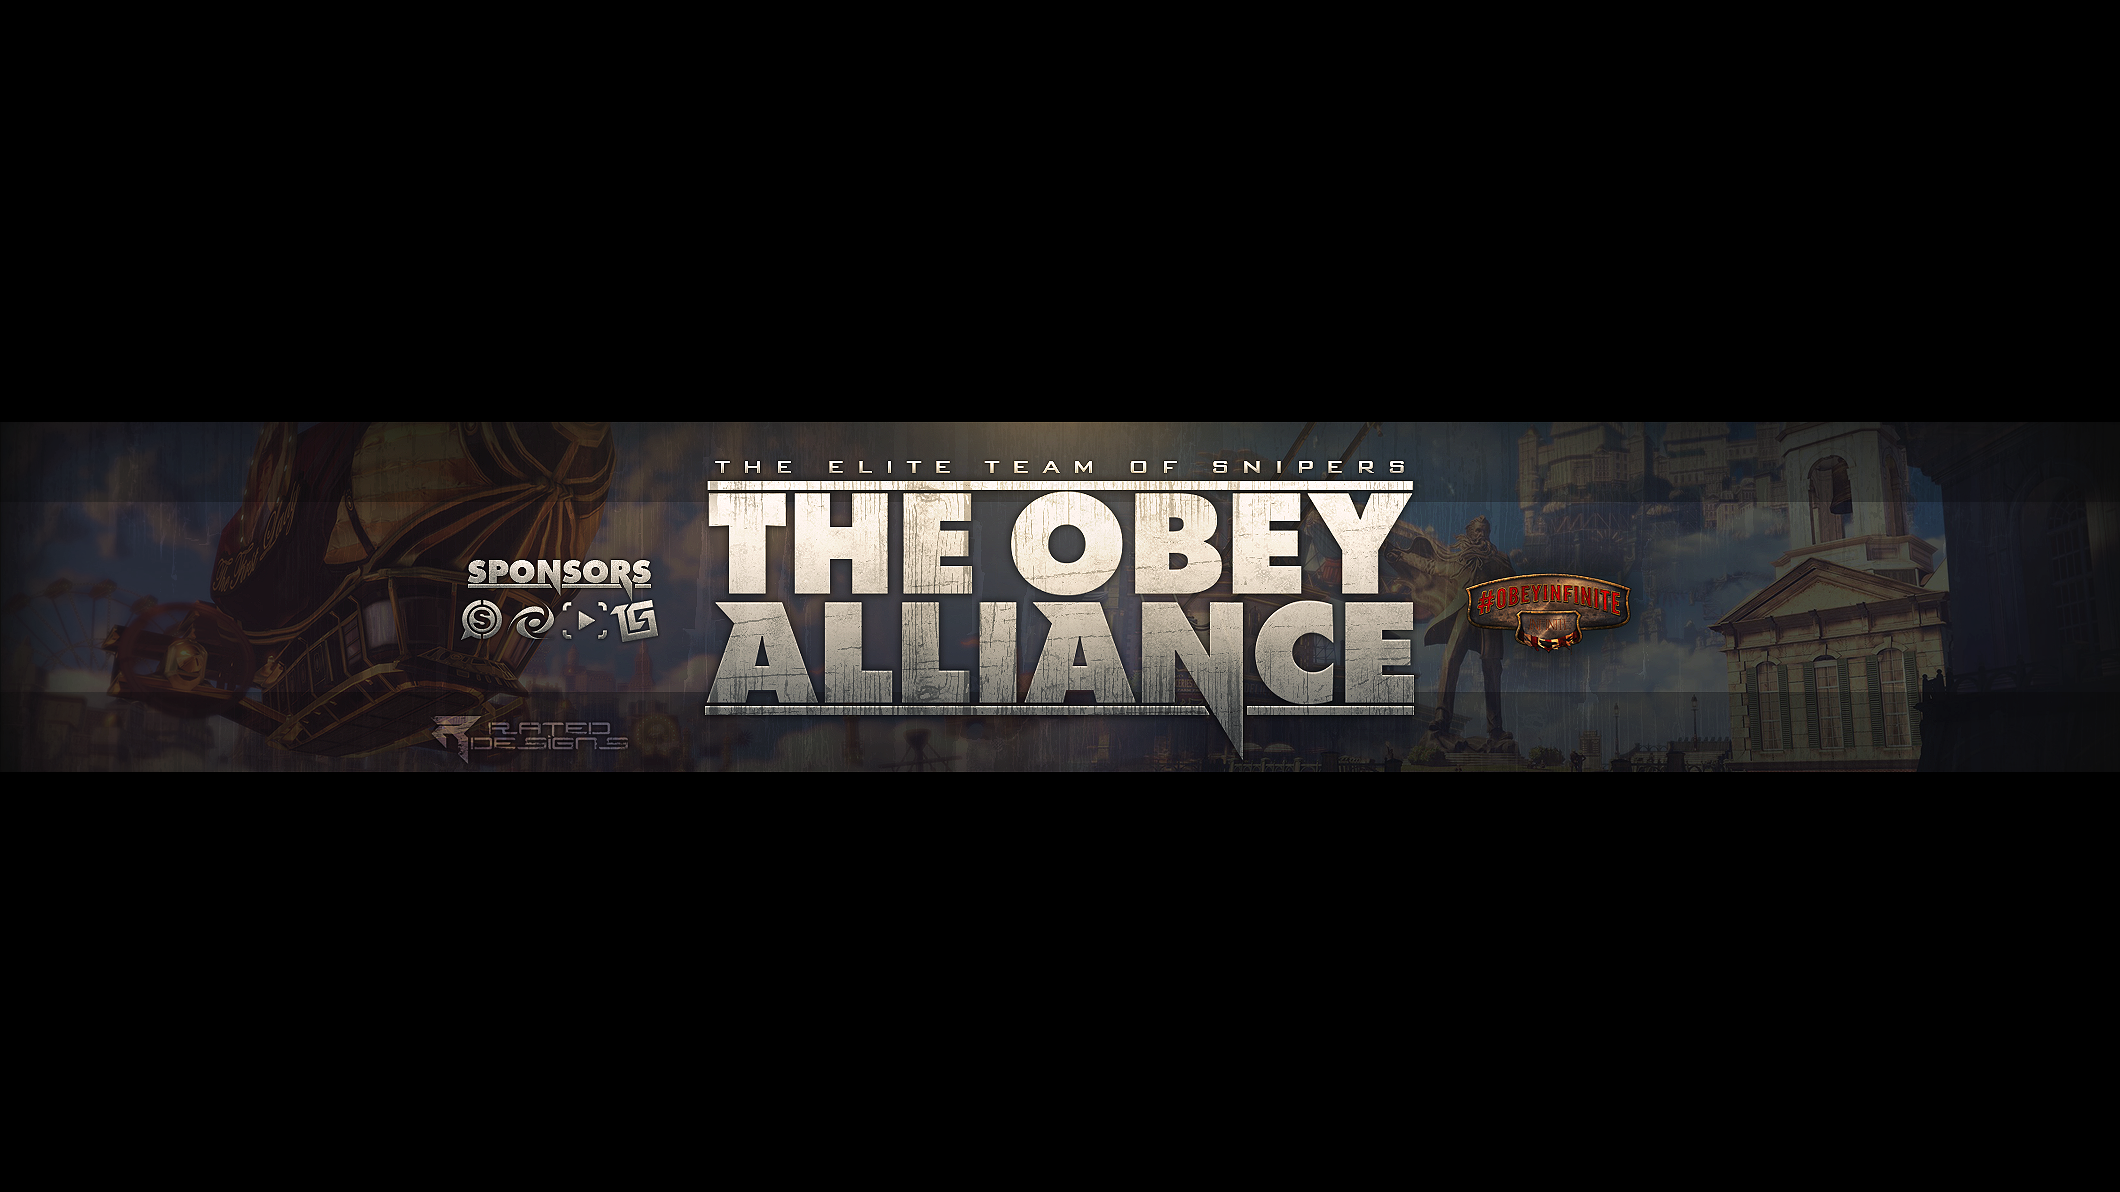 Obey Alliance Youtube Banner by OfficialRated 2120x1192